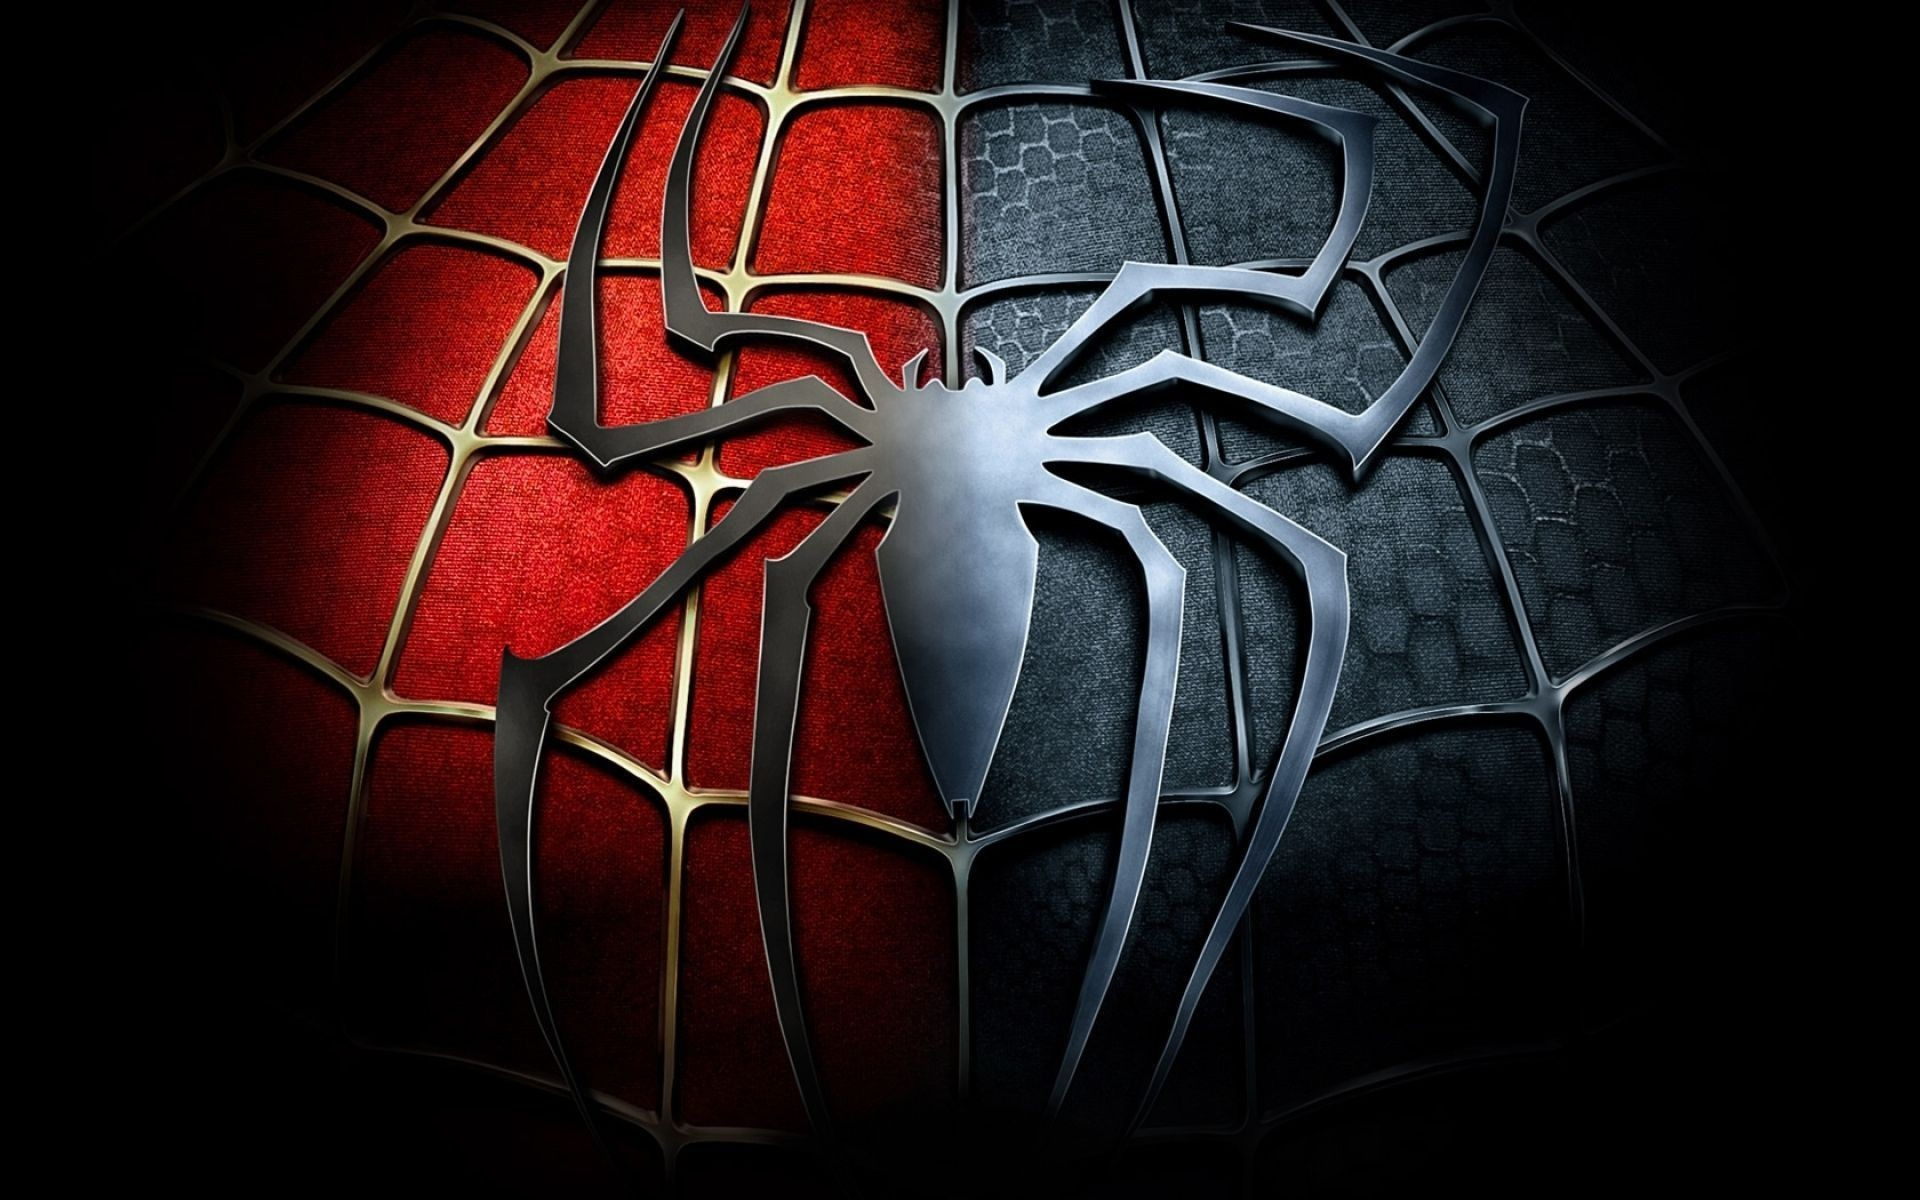 Spiderman 3 Hd Wallpapers 1080p: Spiderman 3 Wallpaper ·① WallpaperTag